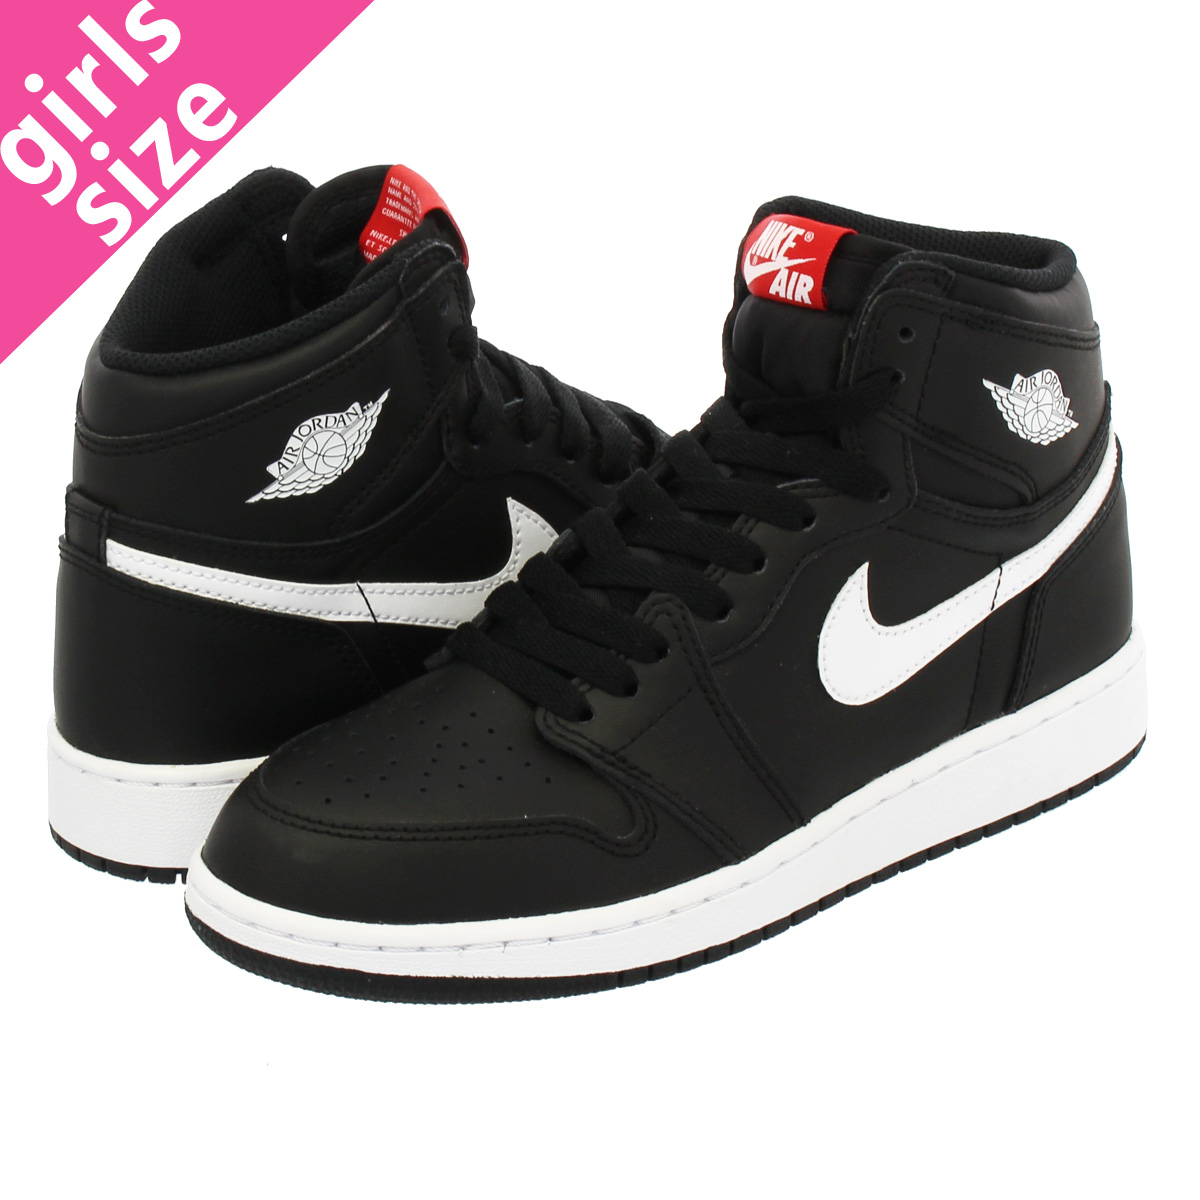 b0351a04966115 SELECT SHOP LOWTEX  NIKE AIR JORDAN 1 RETRO HIGH OG GS BLACK WHITE ...